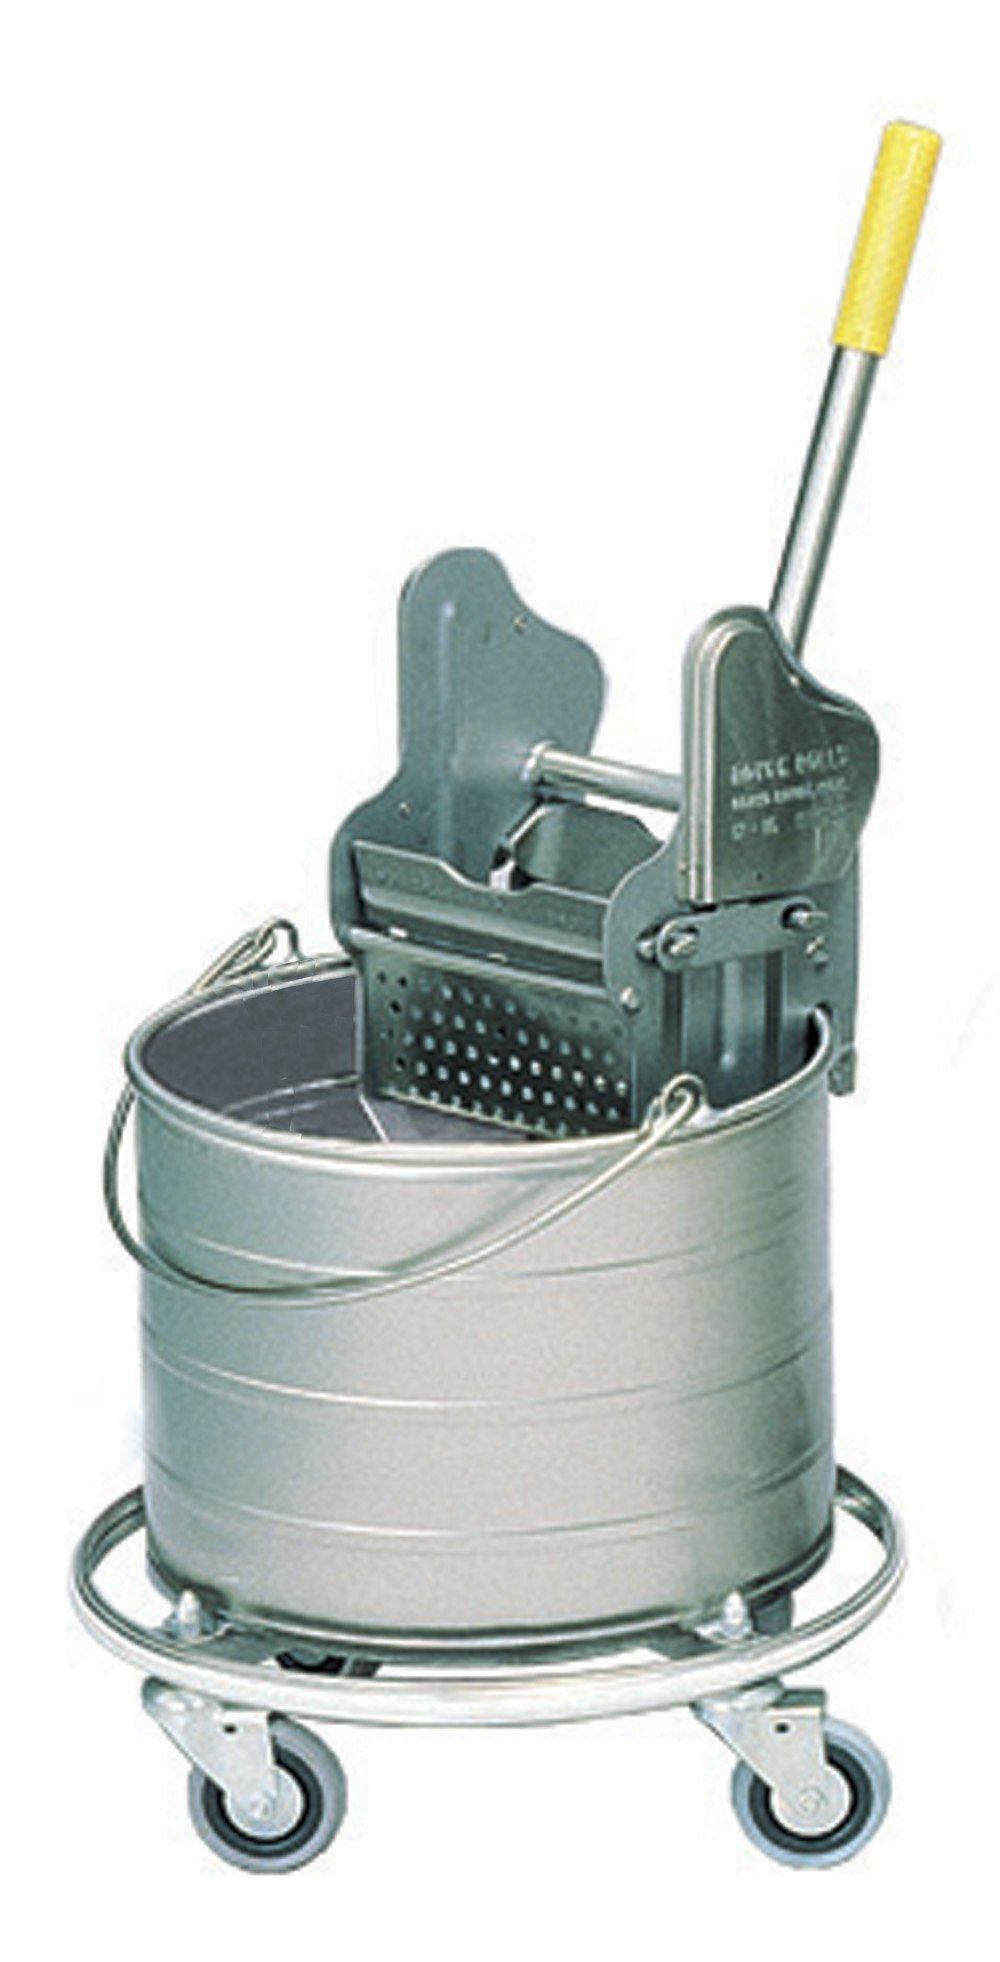 Royce Rolls Stainless Steel 4-Gallon Round Mop Bucket and 12-16 oz. Mop Wringer Combo on 3'' Casters - #404